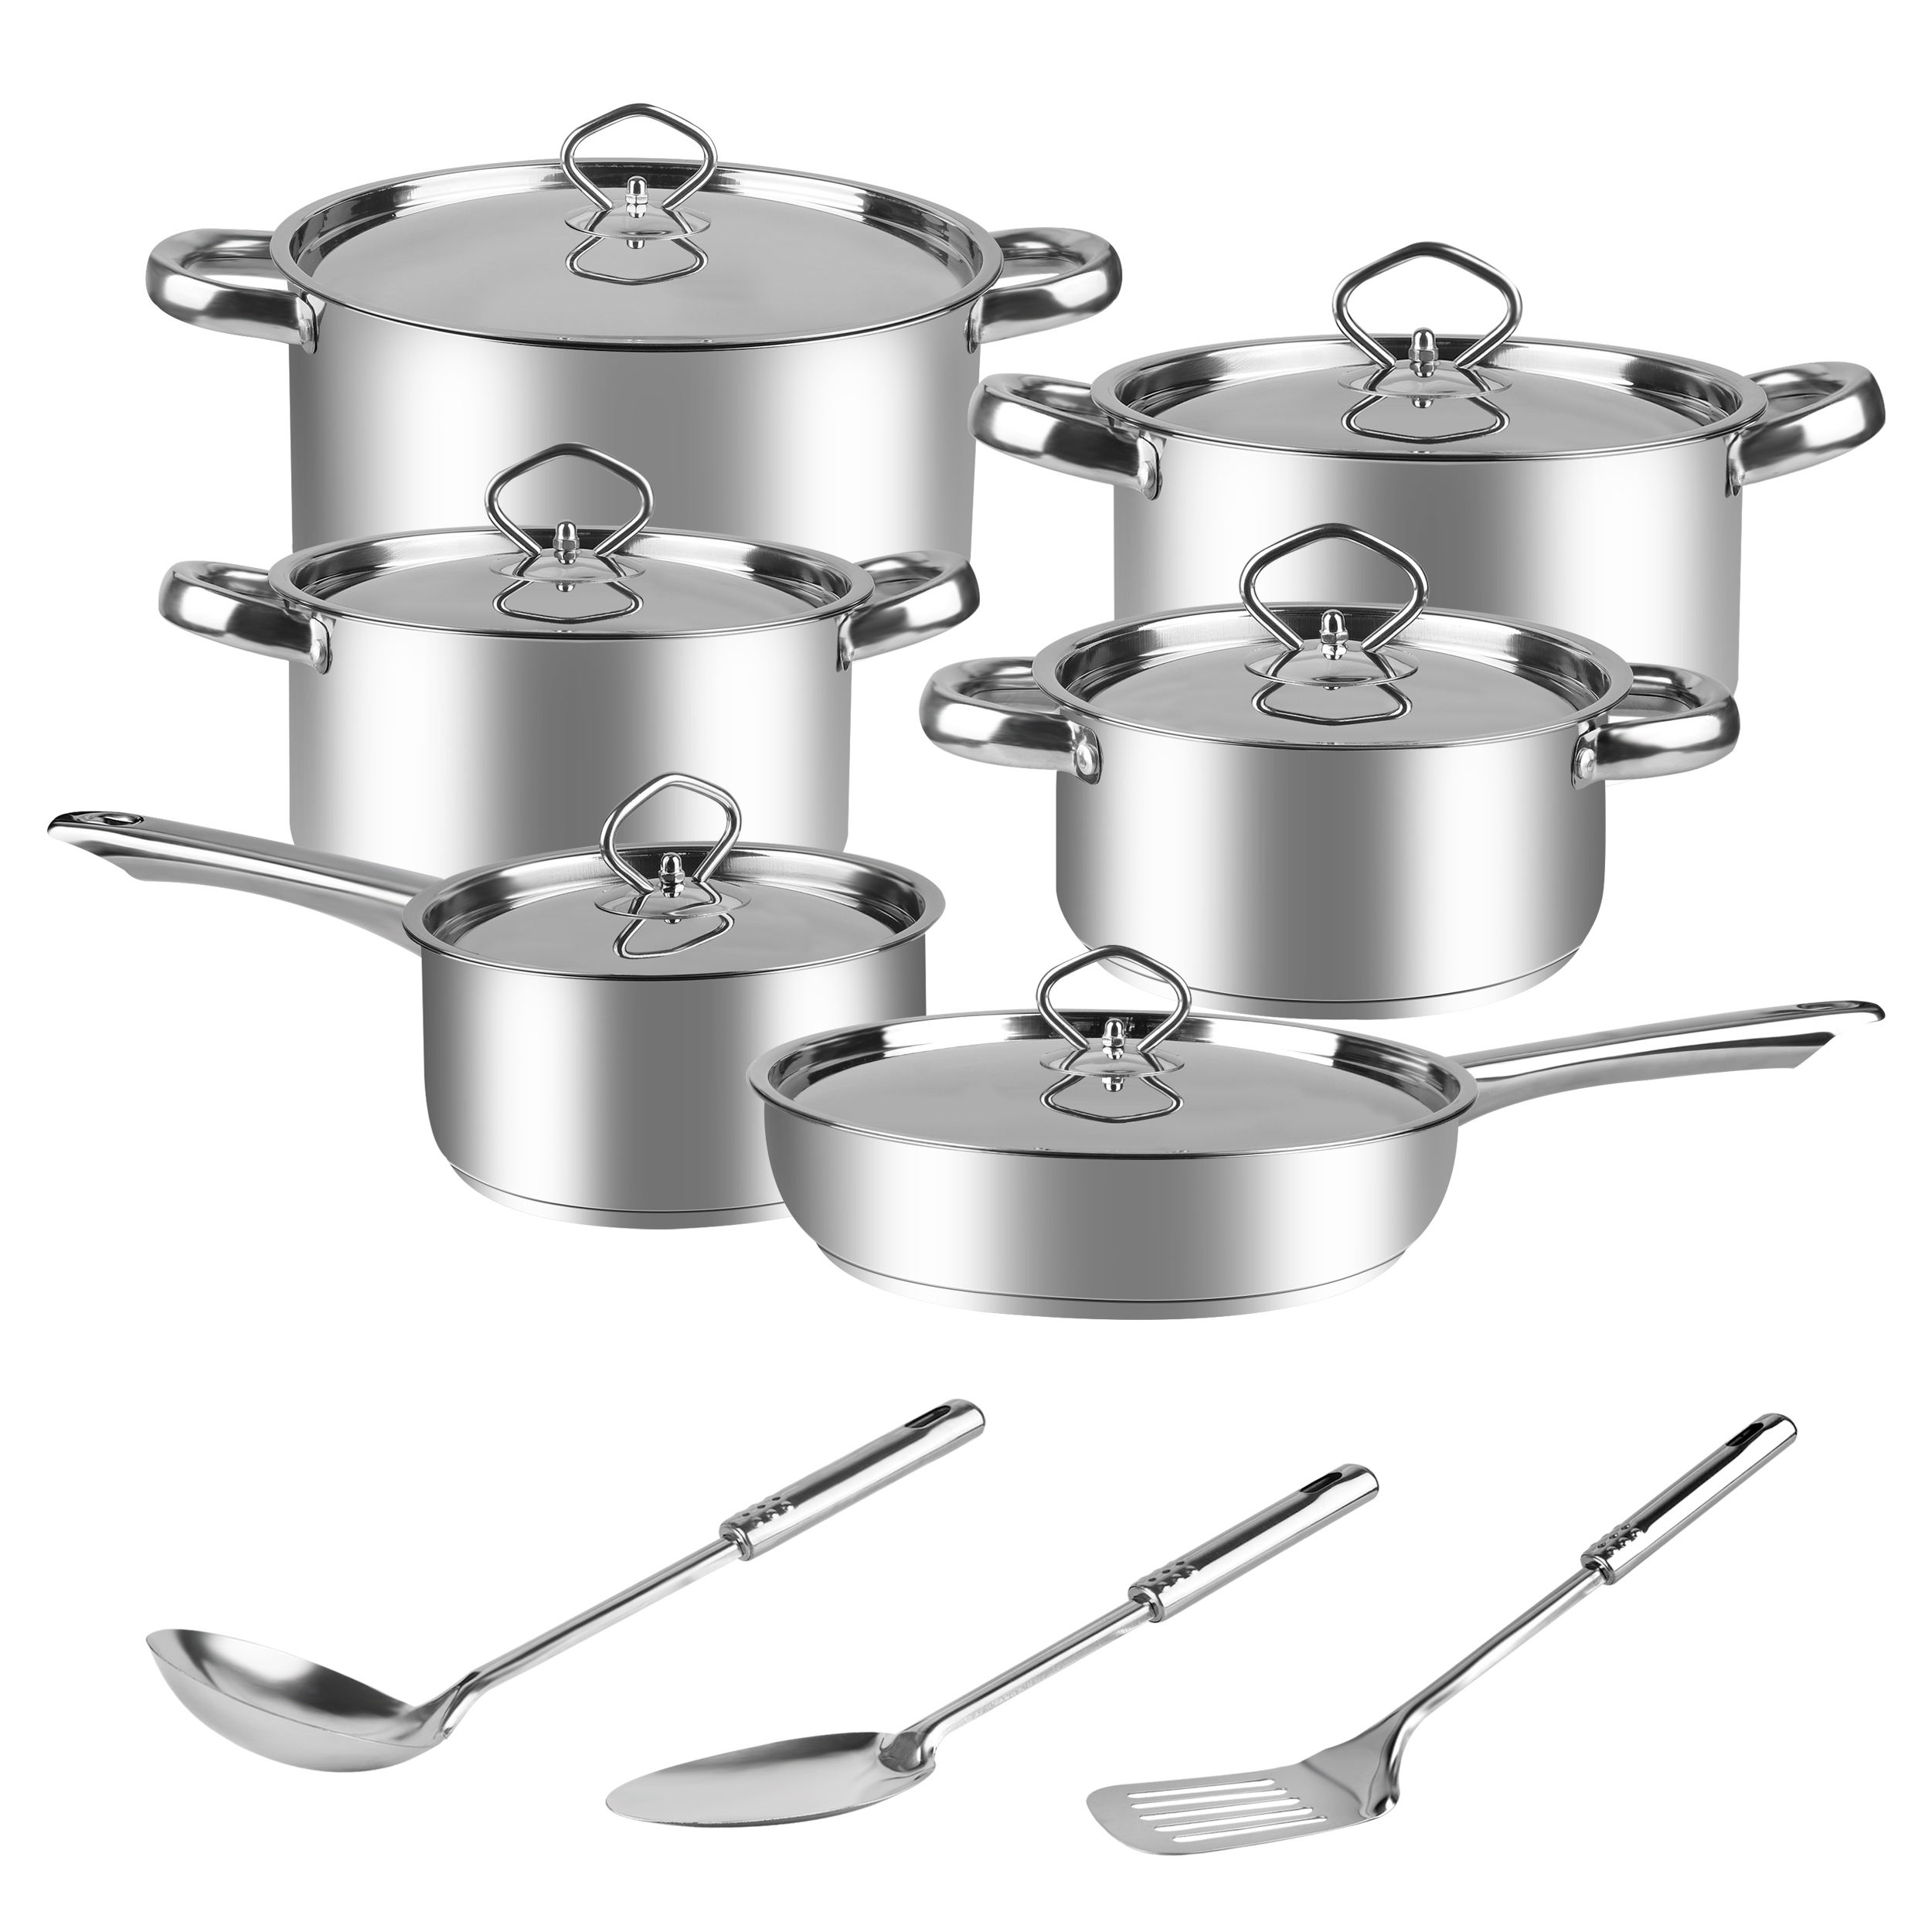 15PCS COOKWARE SET 410# Stainless steel South Africa 5.2KGS